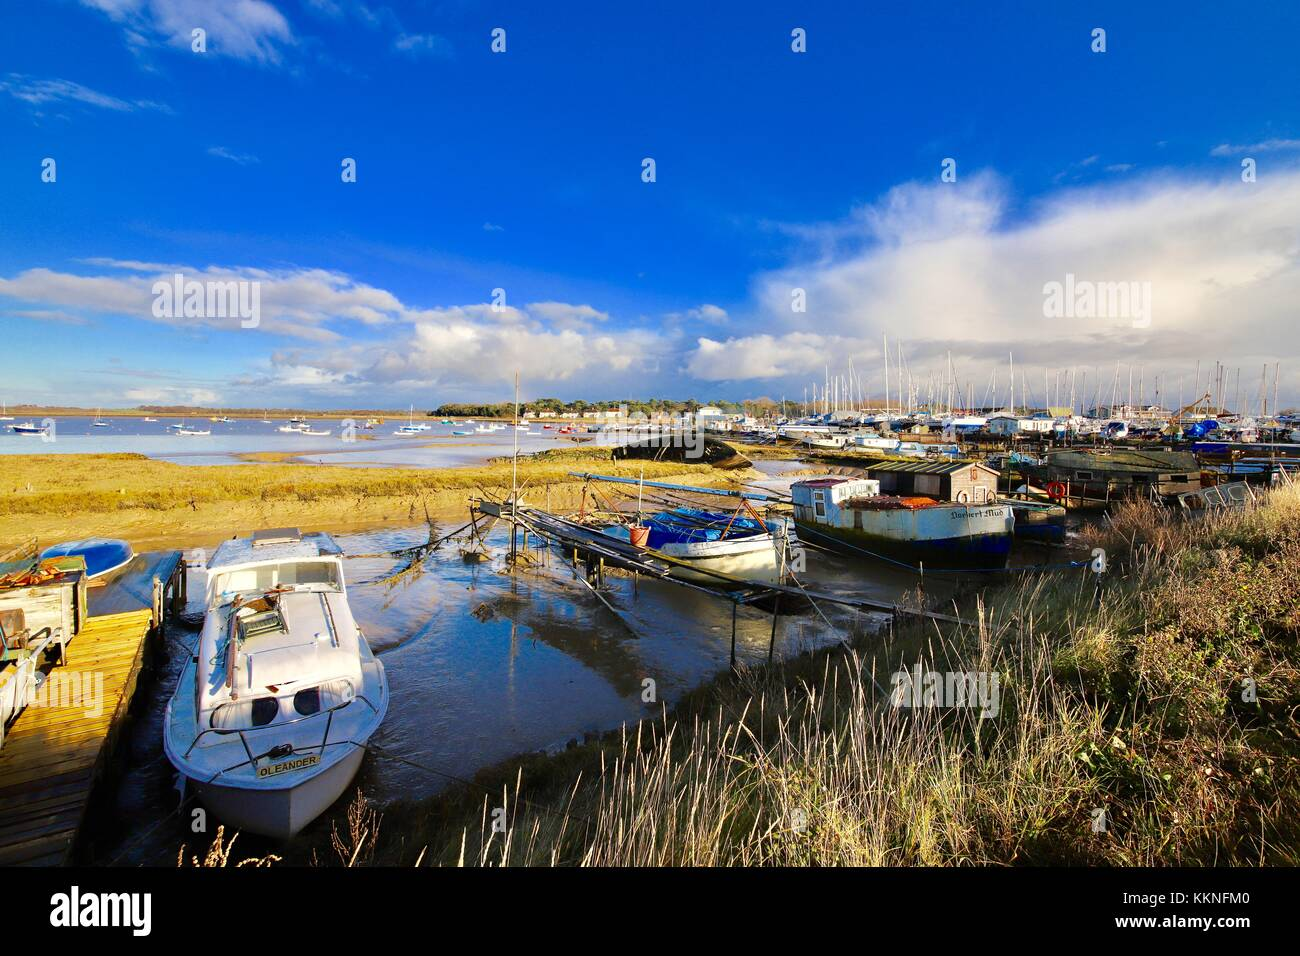 boats-alongside-the-river-deben-at-felix